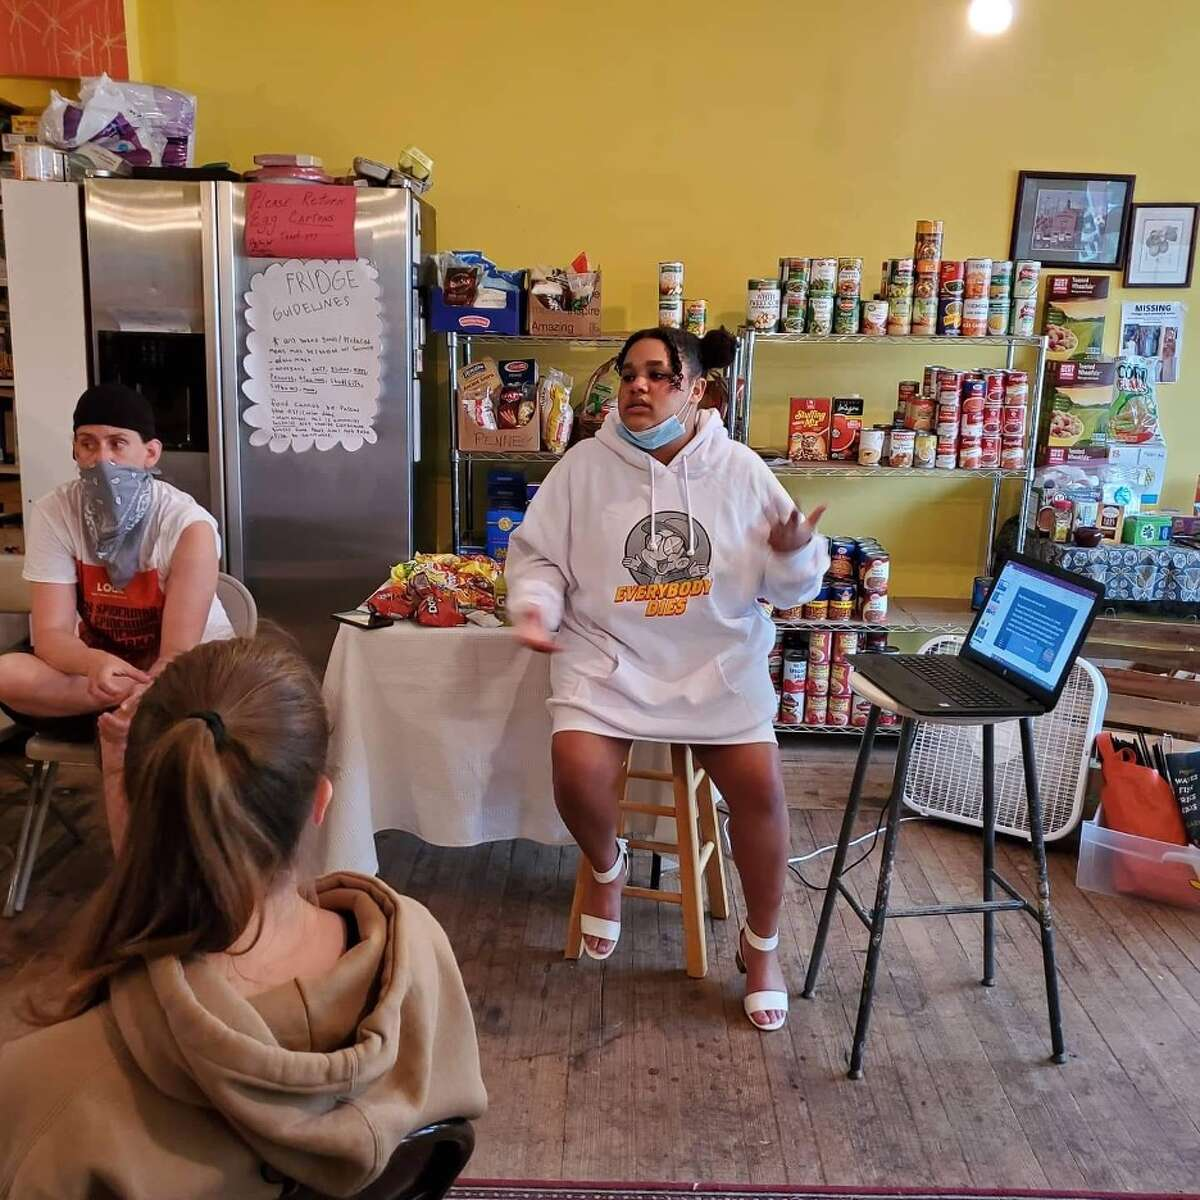 Ten teenagers in Greene and Columbia counties were certified as youth peer leaders as one tool in the local fight to combat the ongoing opioid epidemic. Ayesha Jones, a youth peer leader, here conducts a Naloxone training at the Philmont Free Store.